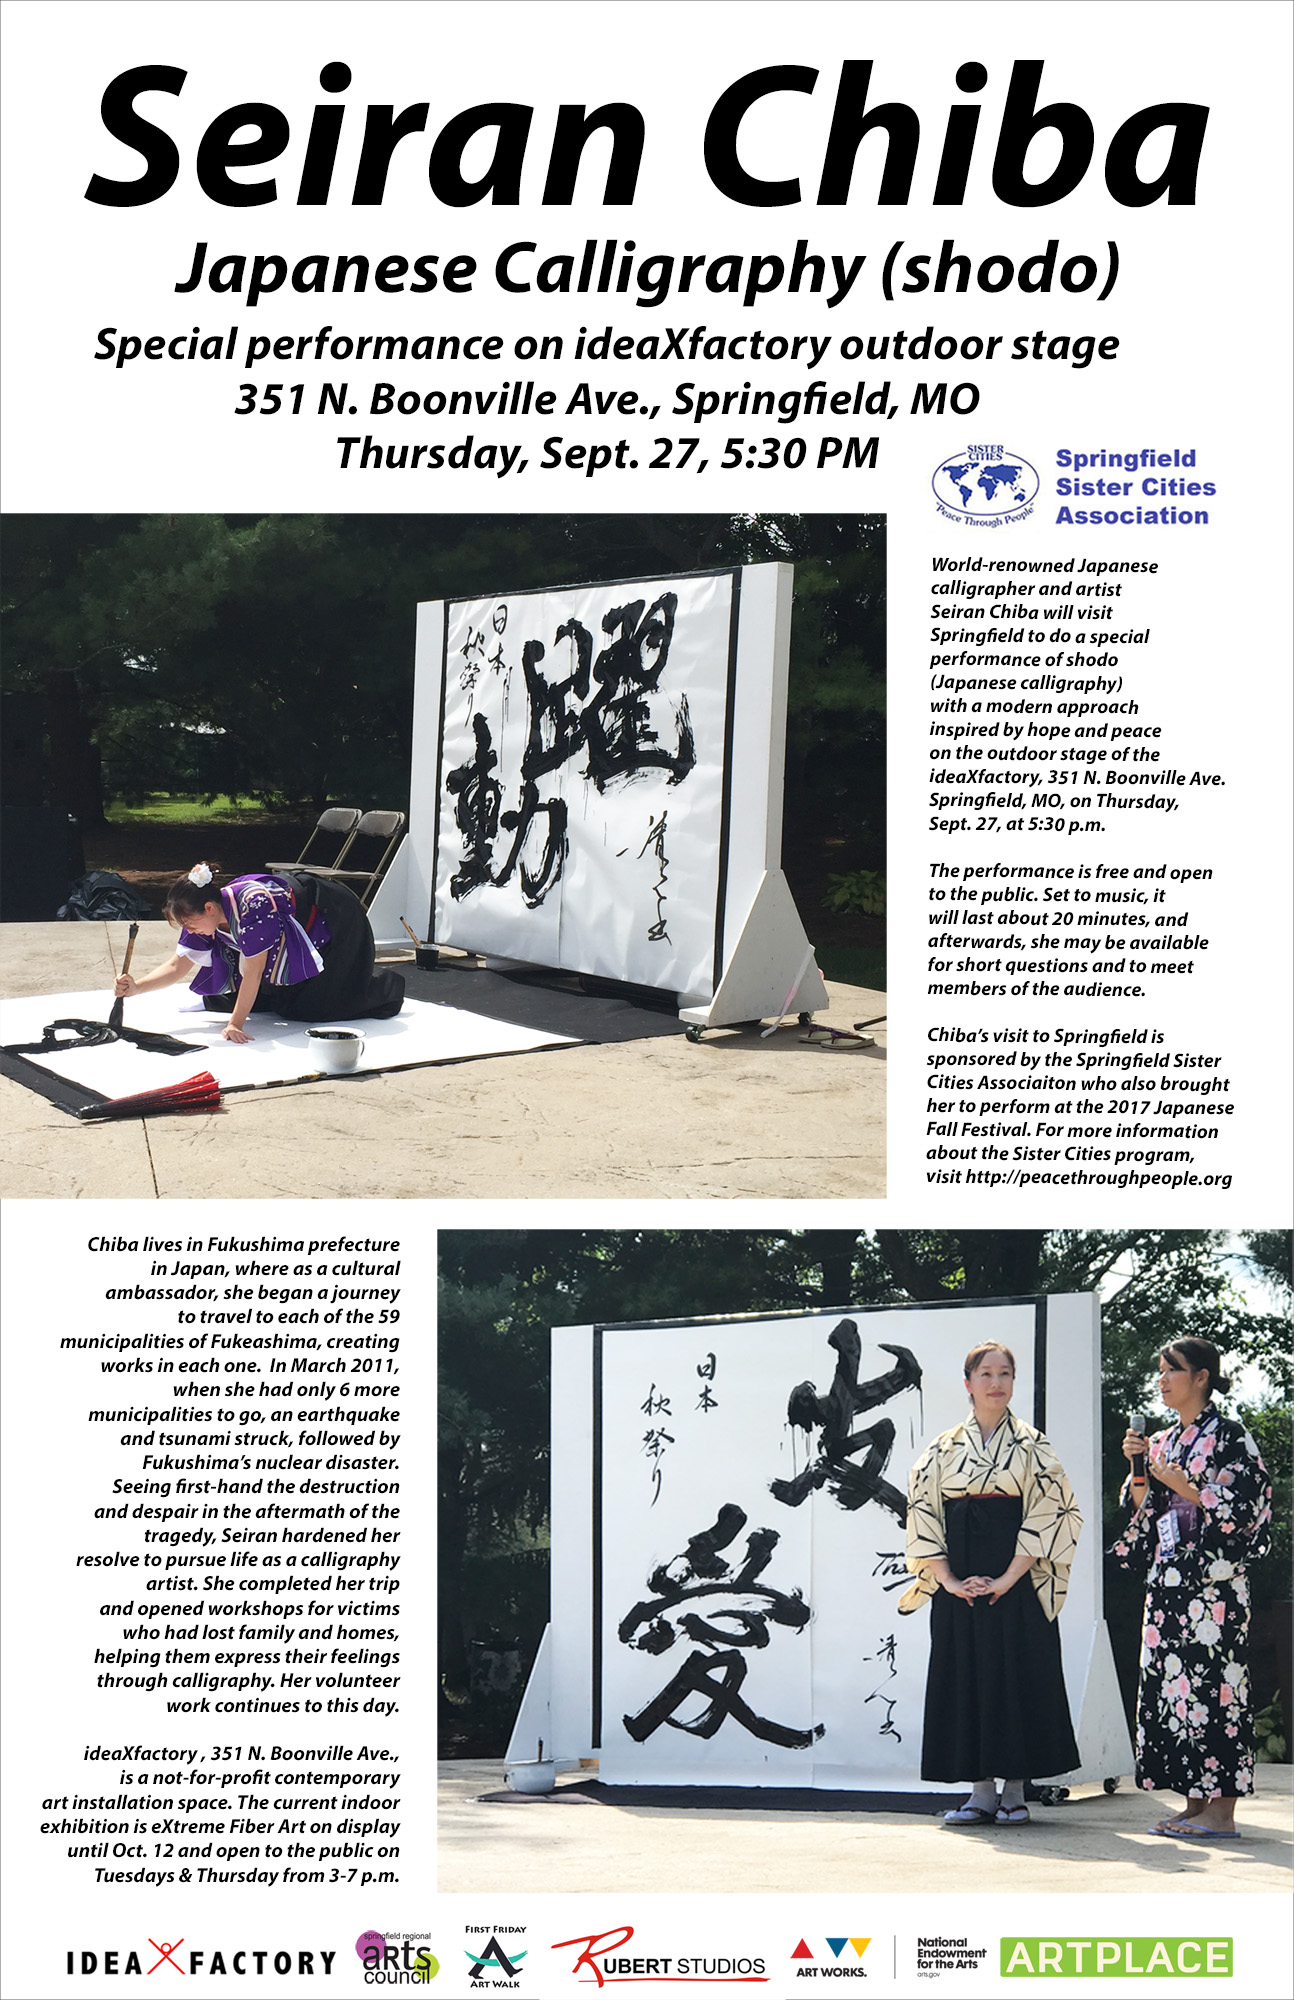 Japanese Calligraphy Performance by Seiran Chiba on Sept. 27